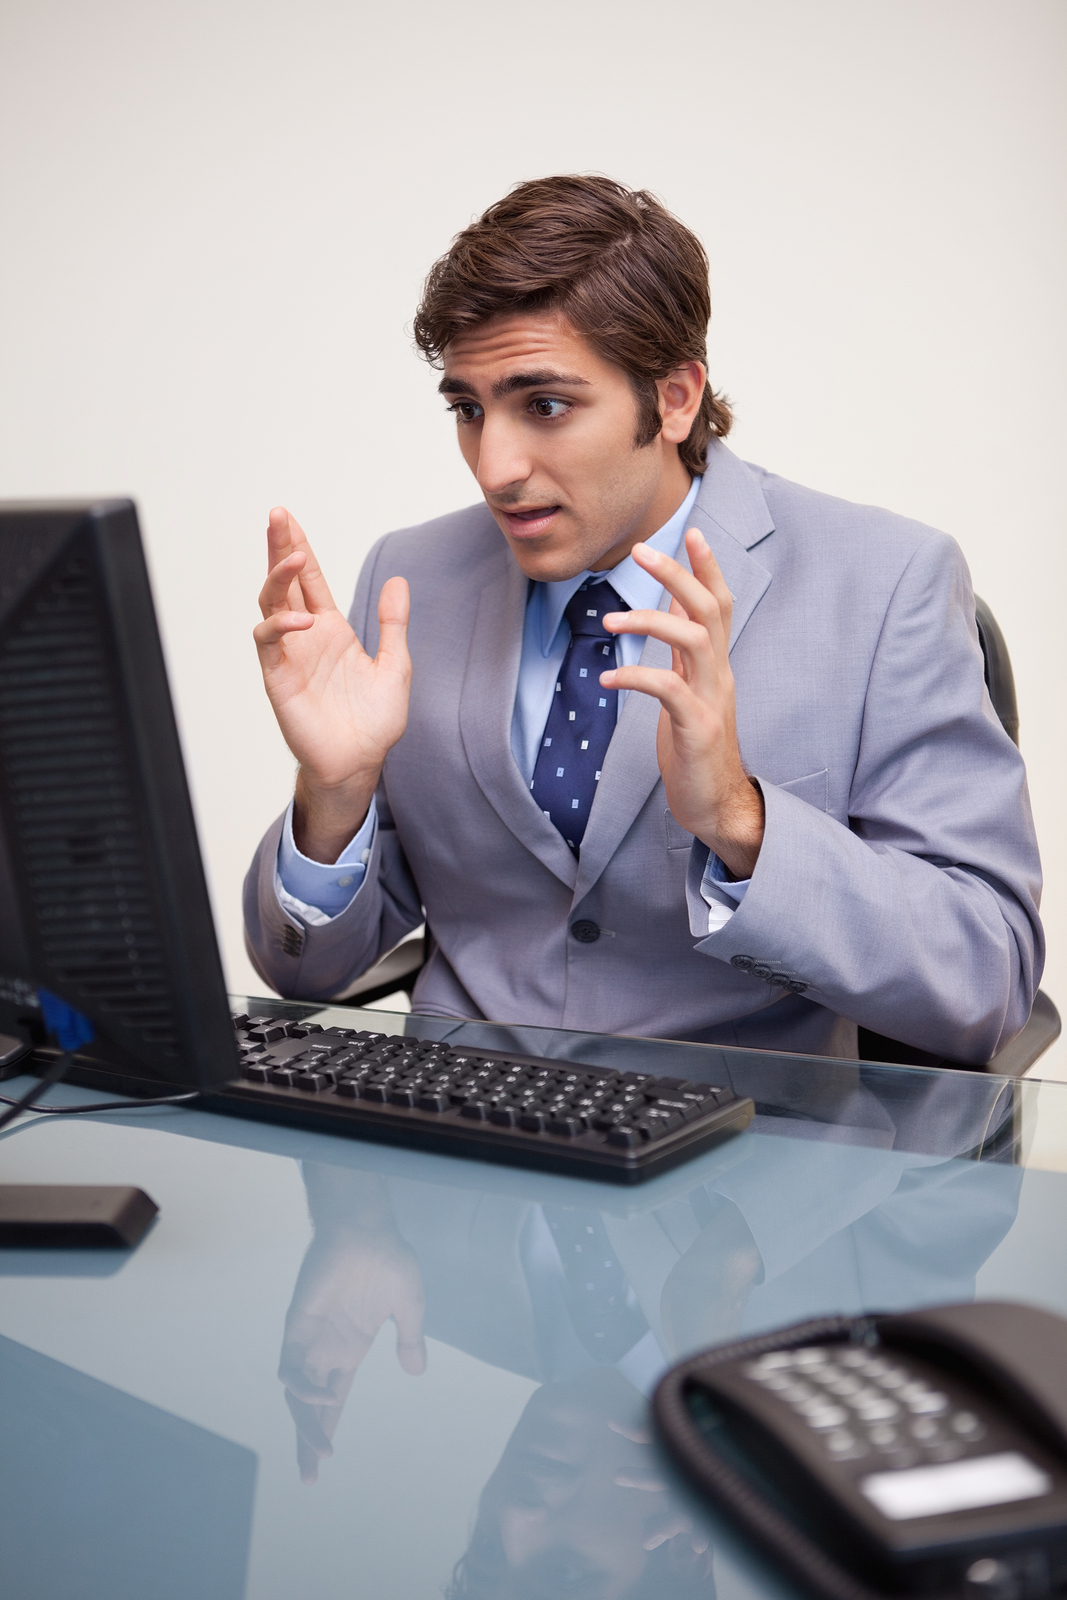 bigstock-Young-businessman-getting-surp-27297122